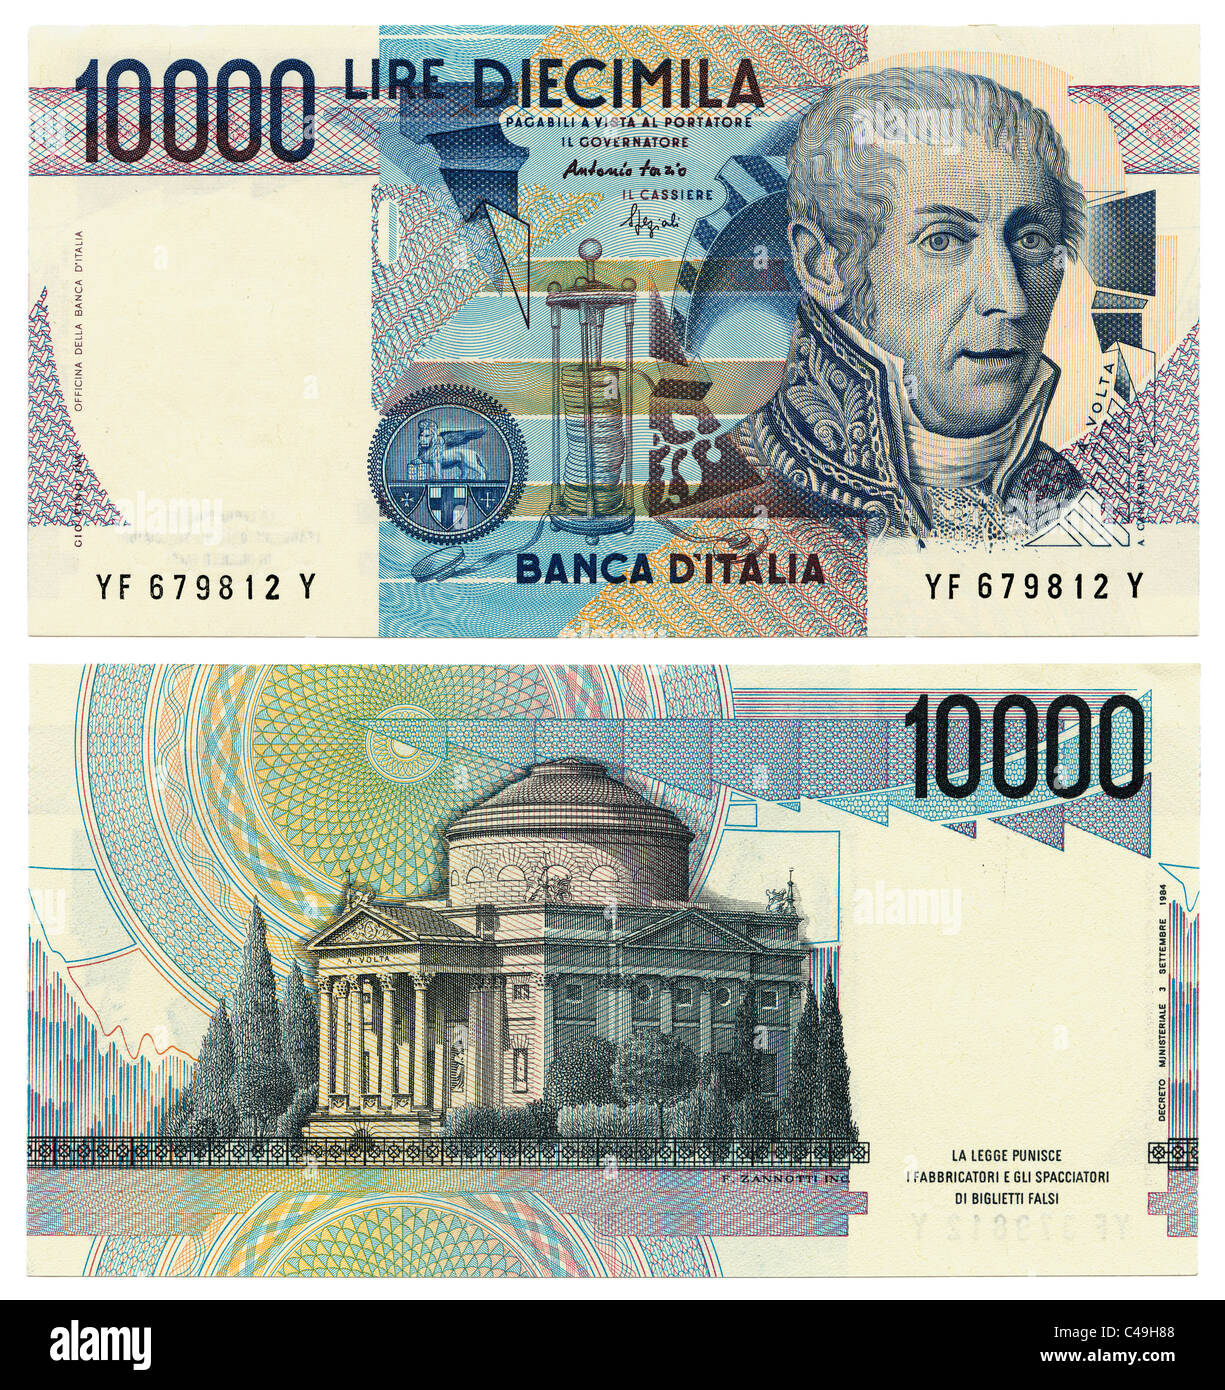 Front And Back Of Former 10000 Cimila Italian Lira Banknote Replaced By The Euro In 2002 On A Pure White Background Jmh4970